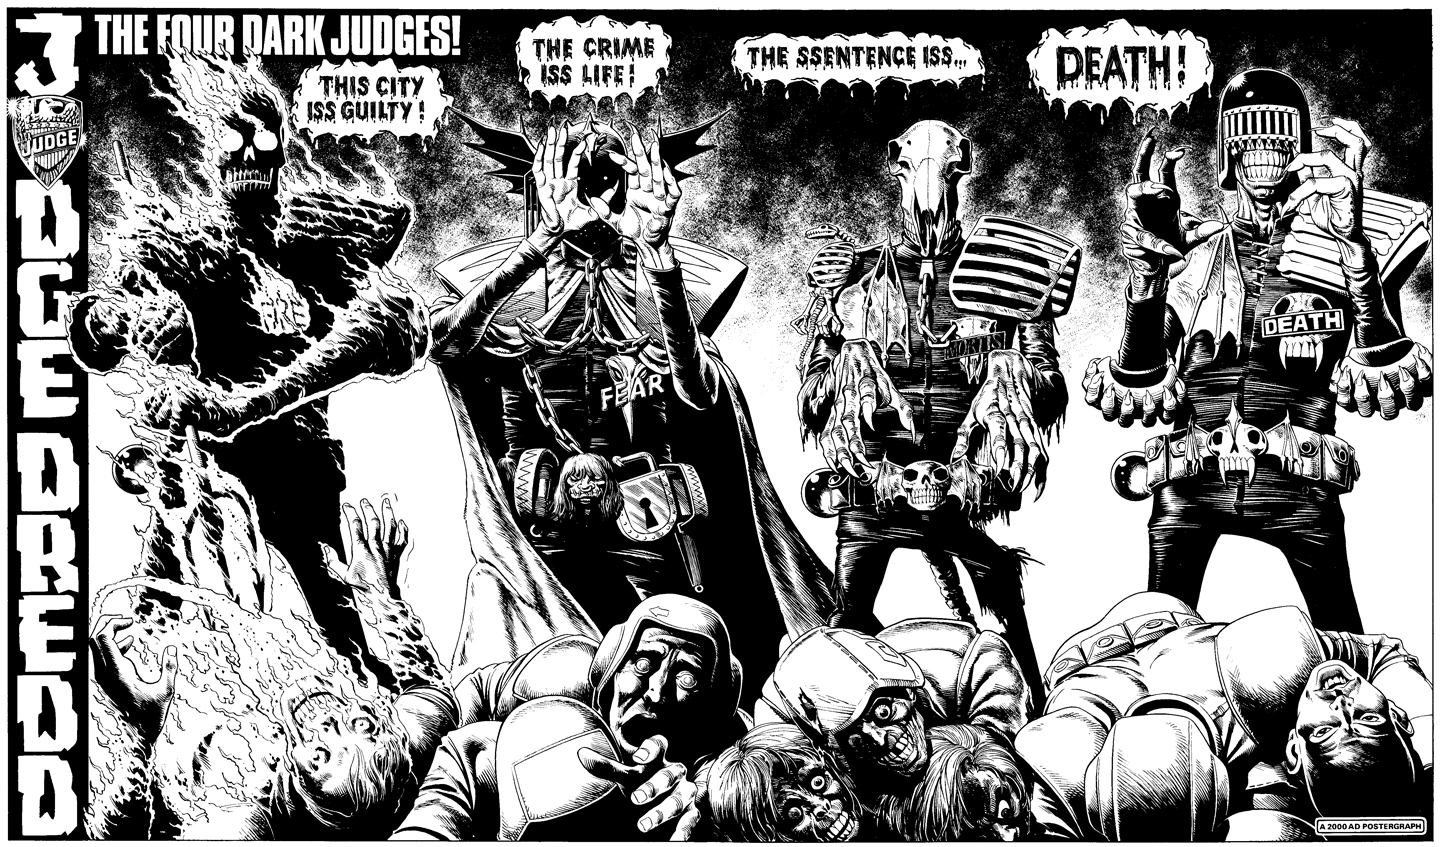 Dark-judges-juez-dredd Fabulantes